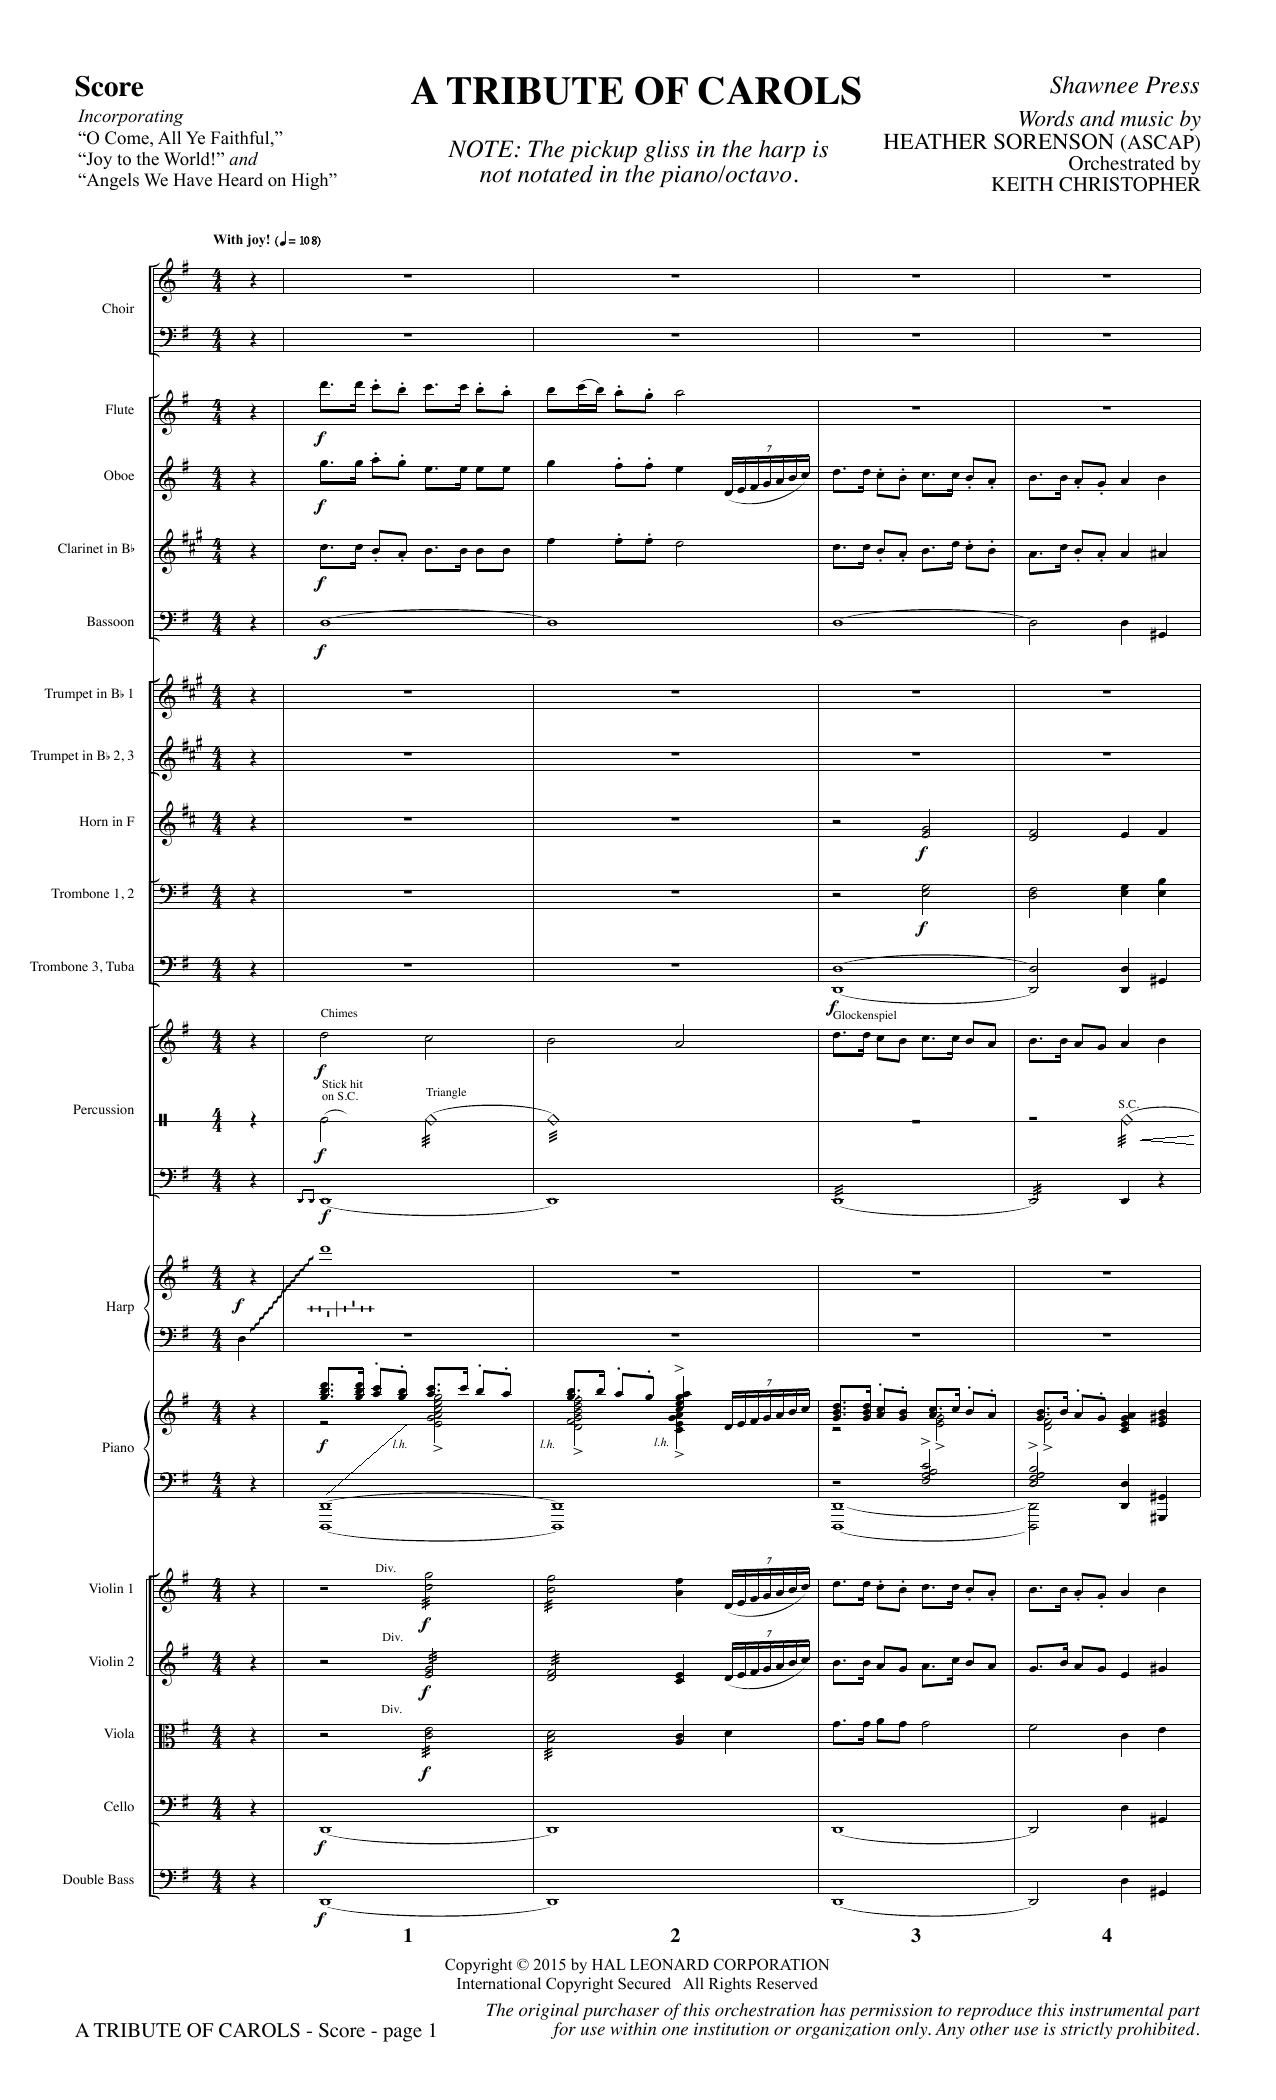 Heather Sorenson A Tribute of Carols - Full Score sheet music notes and chords. Download Printable PDF.